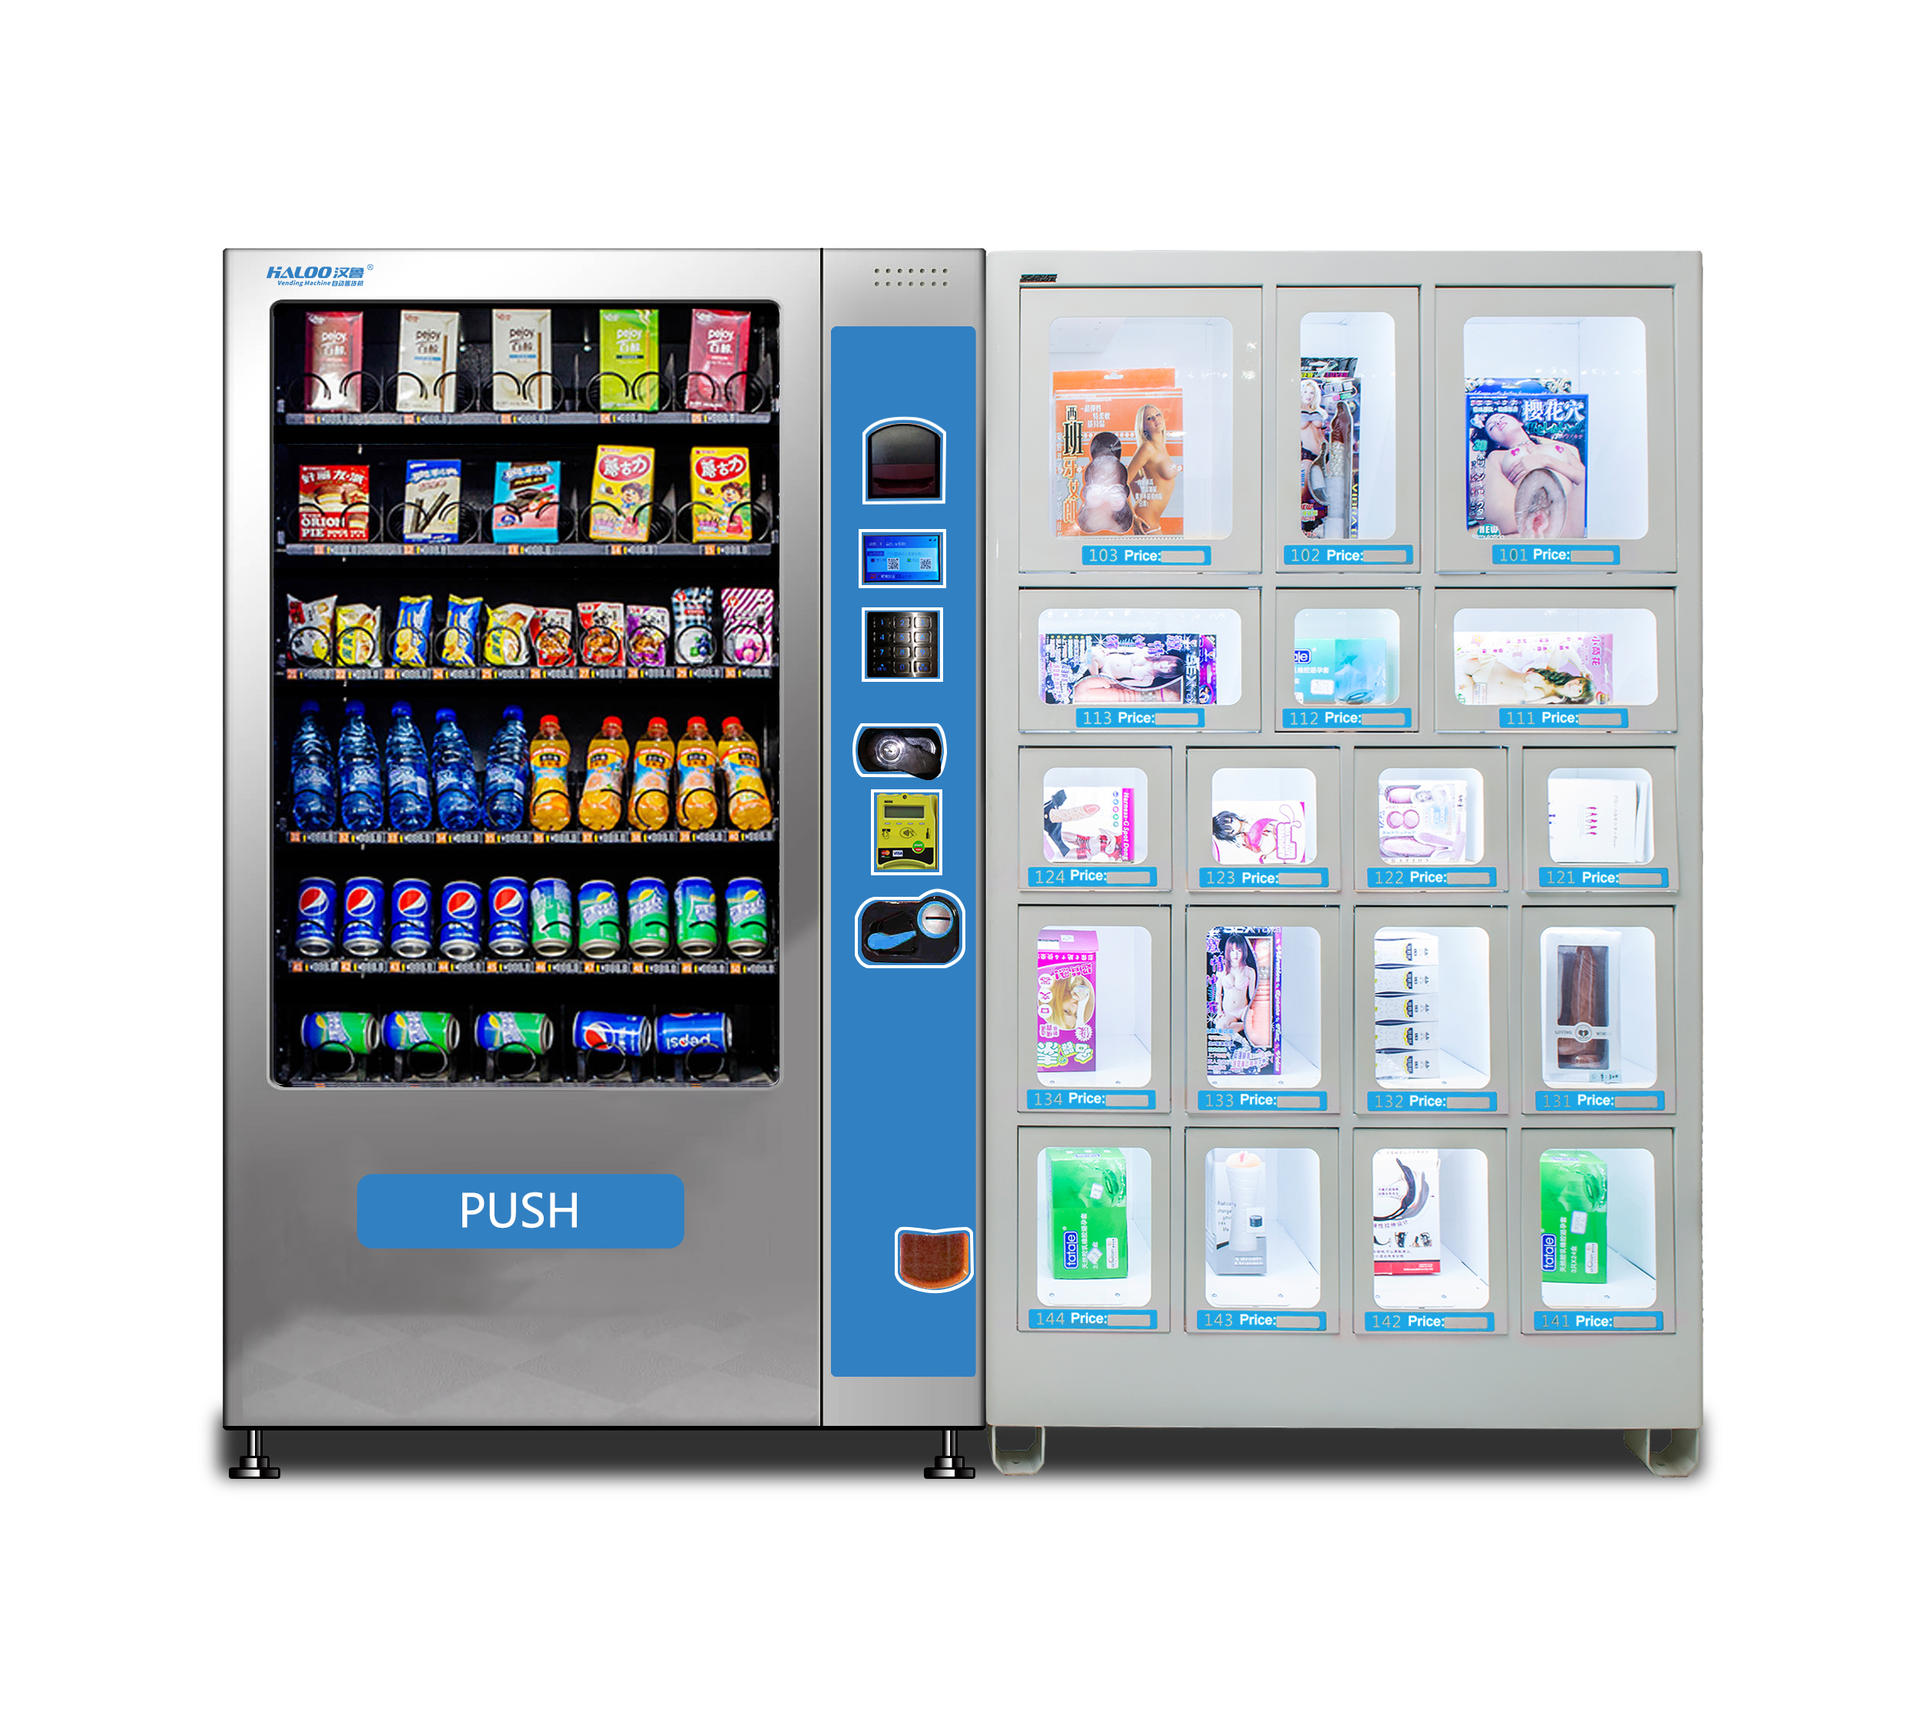 book magazine and news paper vending machine with 30 selection for airport